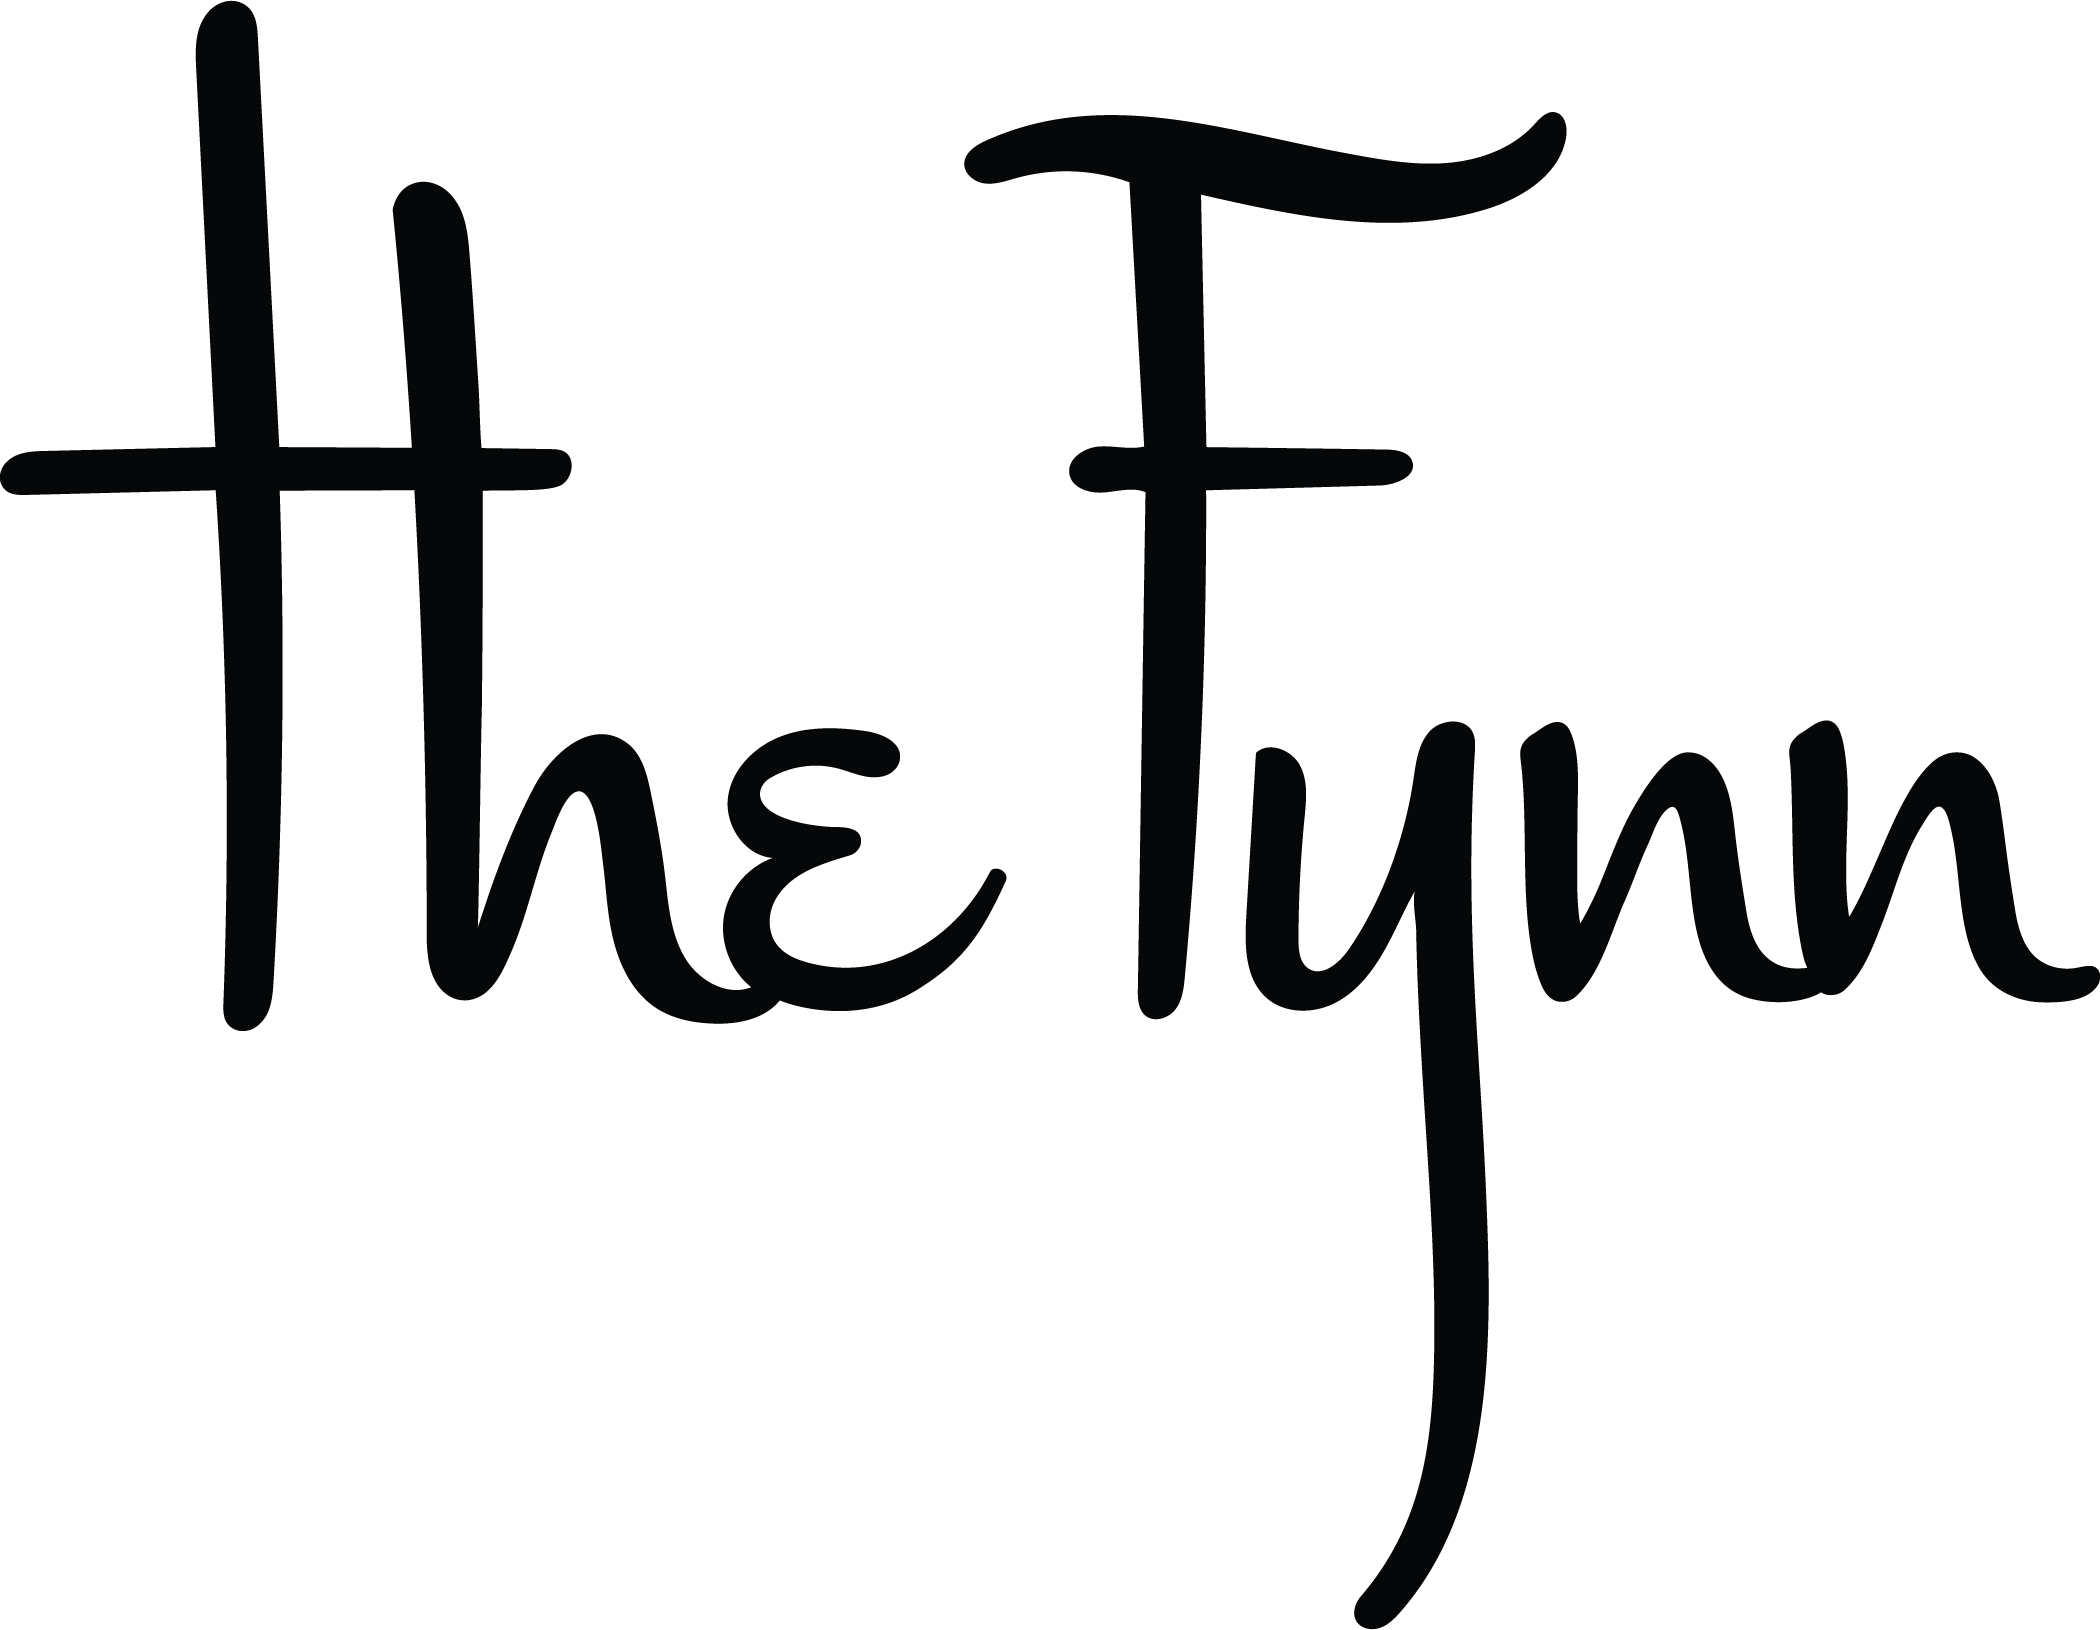 The Fynn logo